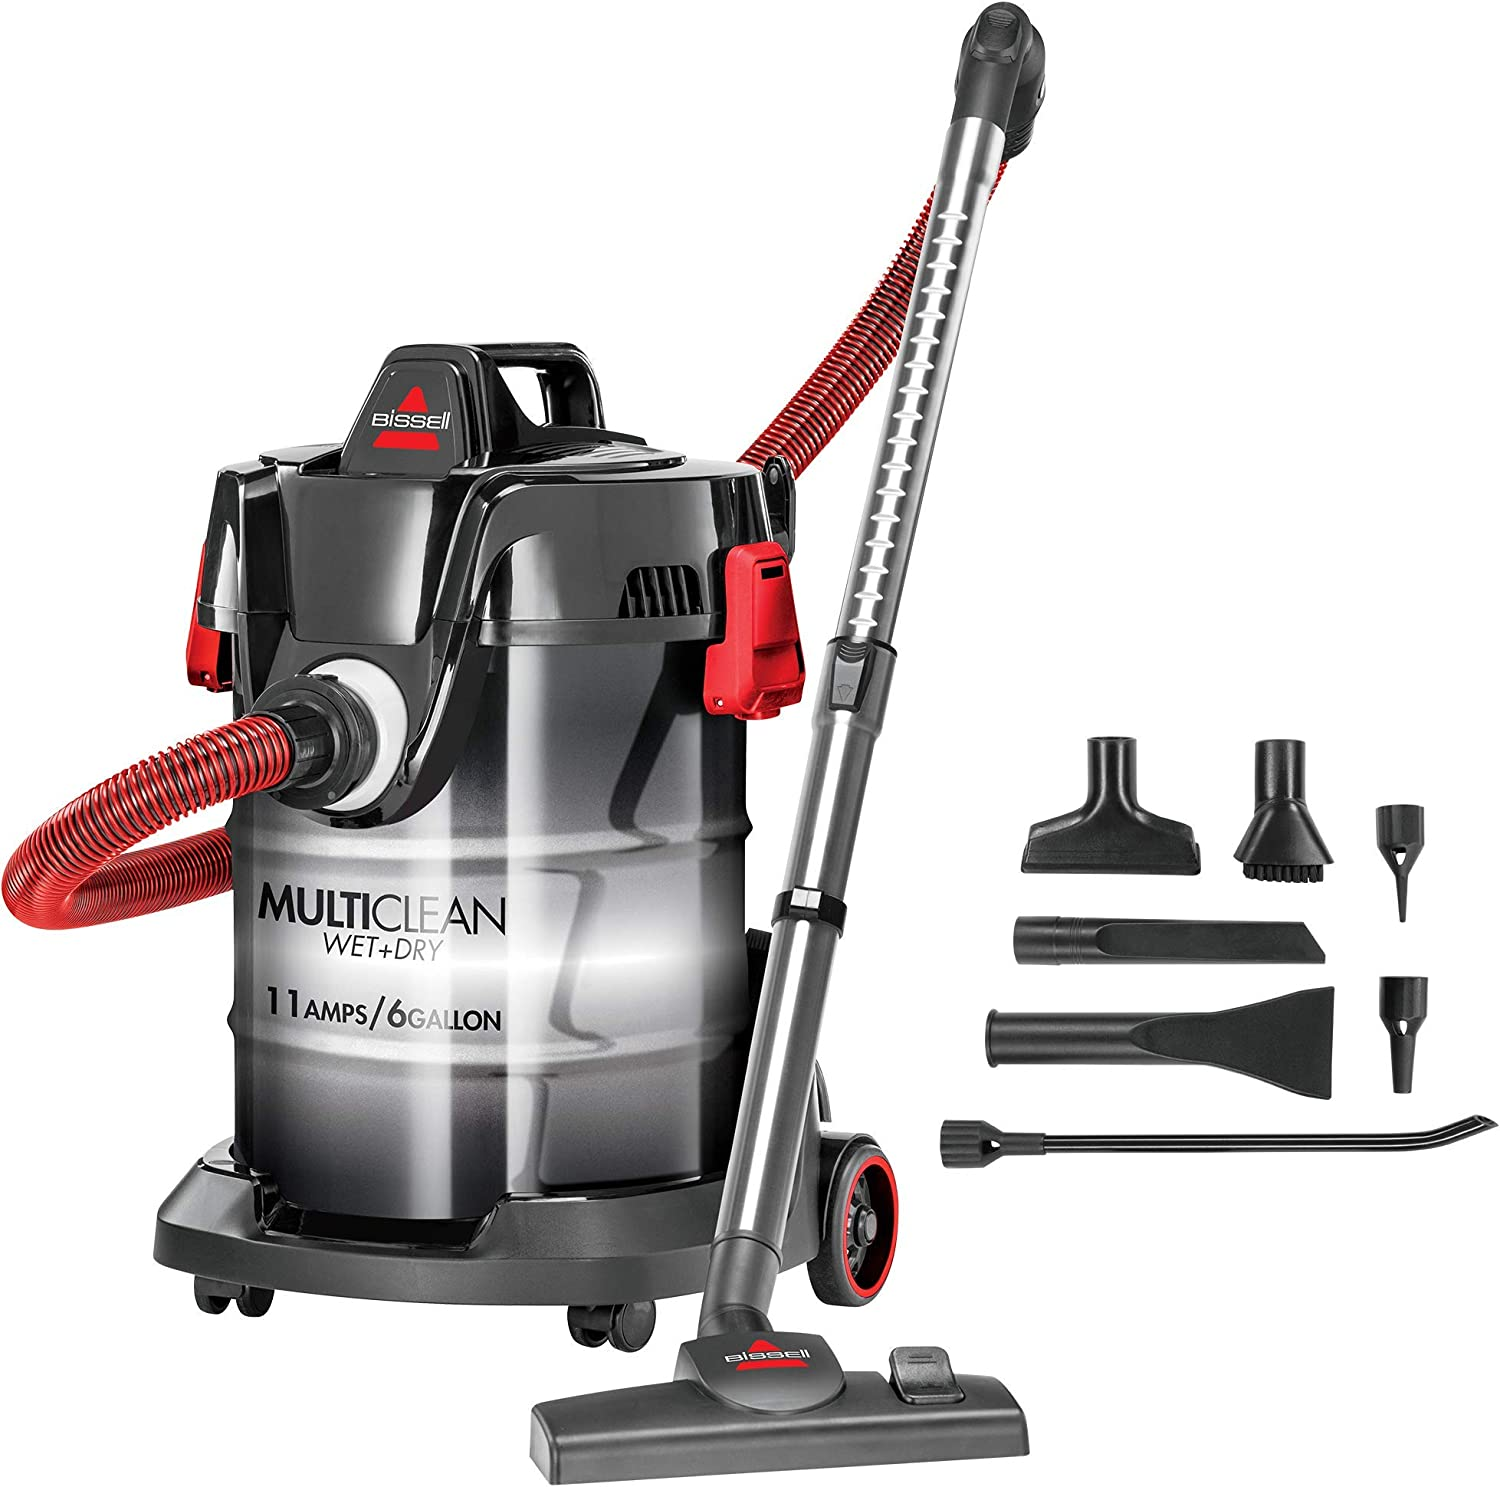 Bissell MultiClean Wet/Dry Garage and Auto Vacuum Cleaner, Red, 2035M (Renewed)